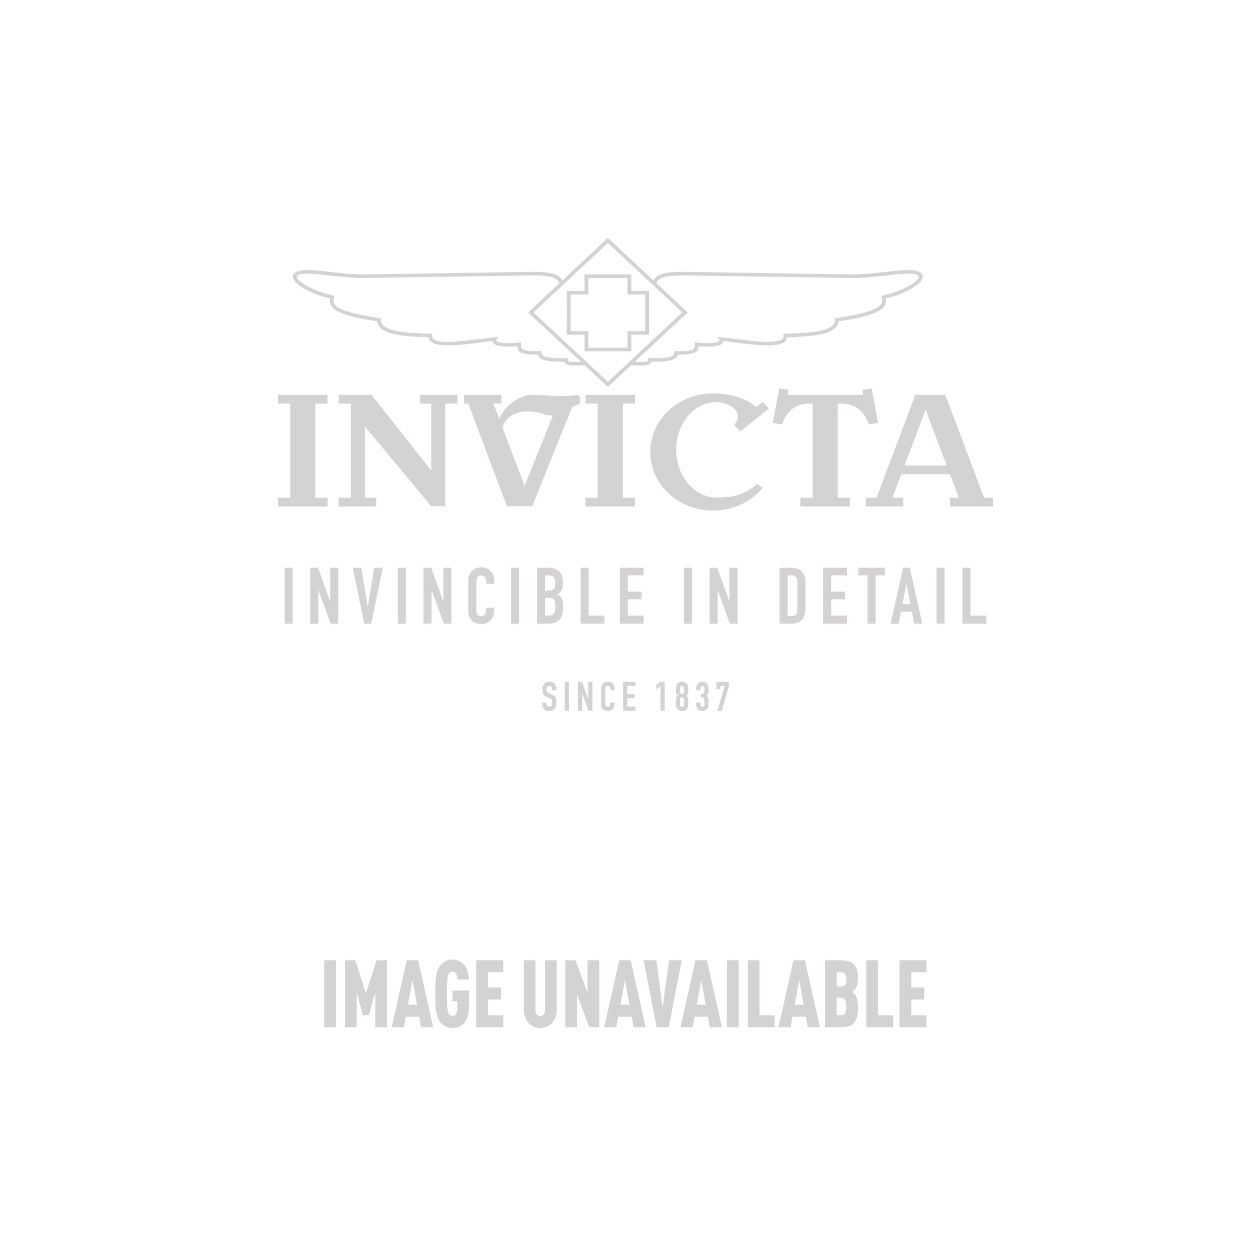 Invicta Reserve Quartz Watch - Black, Stainless Steel case with Black, Ivory tone Leather band - Model 17579